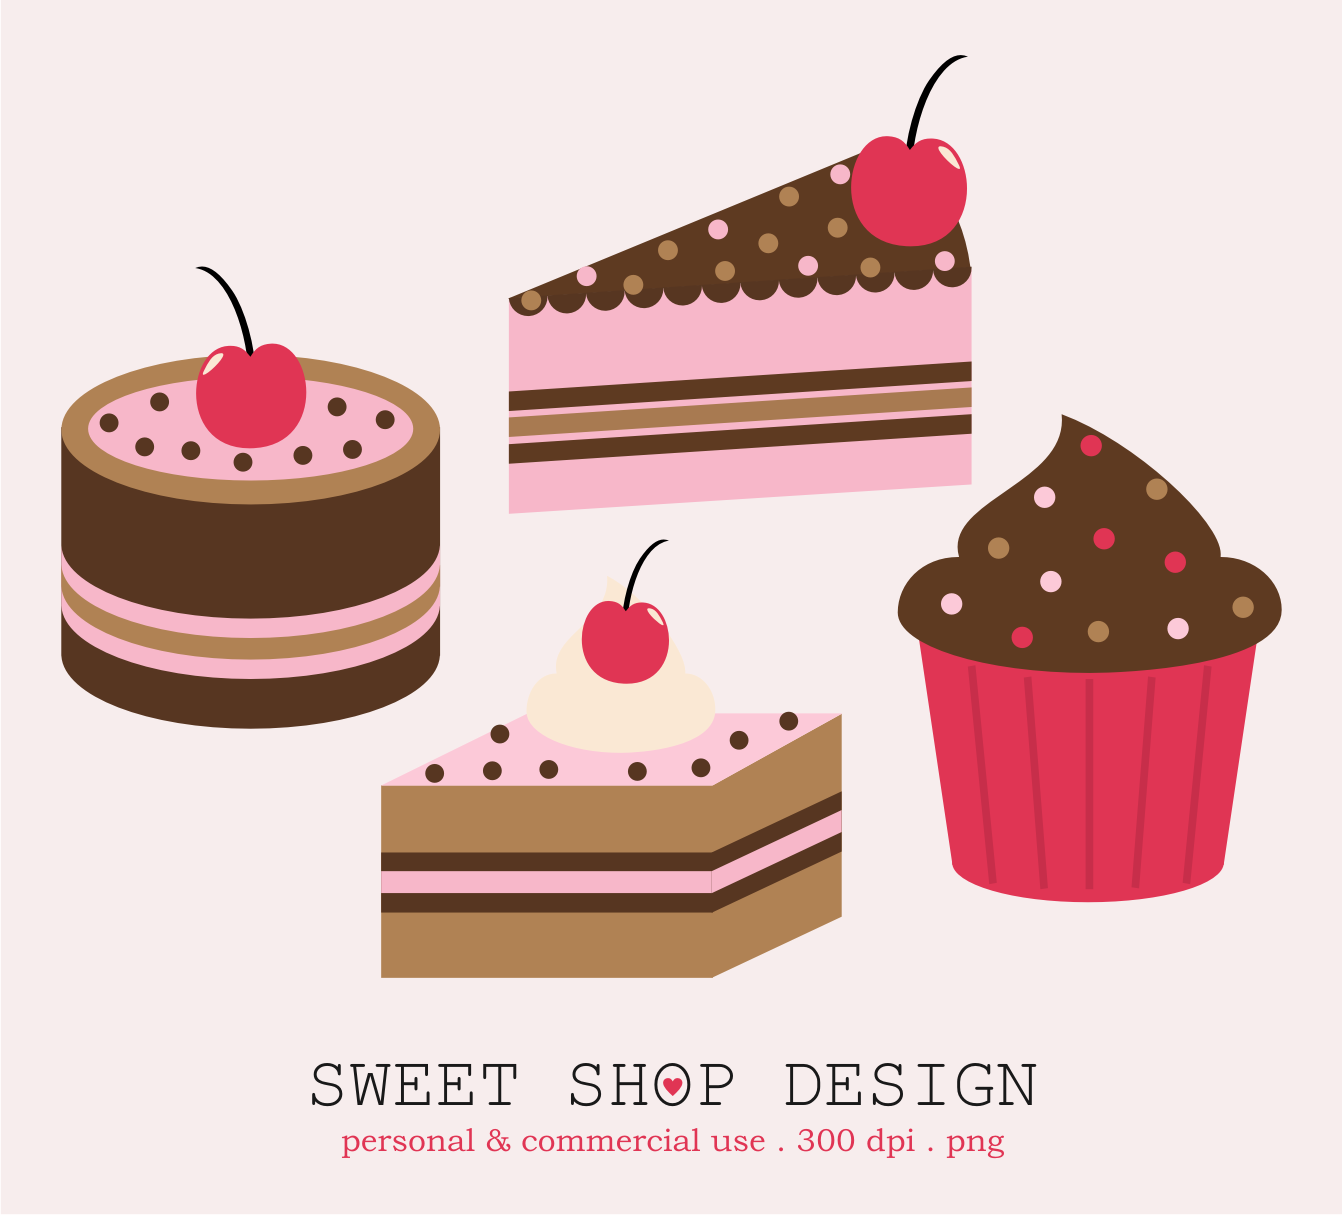 Sweet Shop Design: May 2013